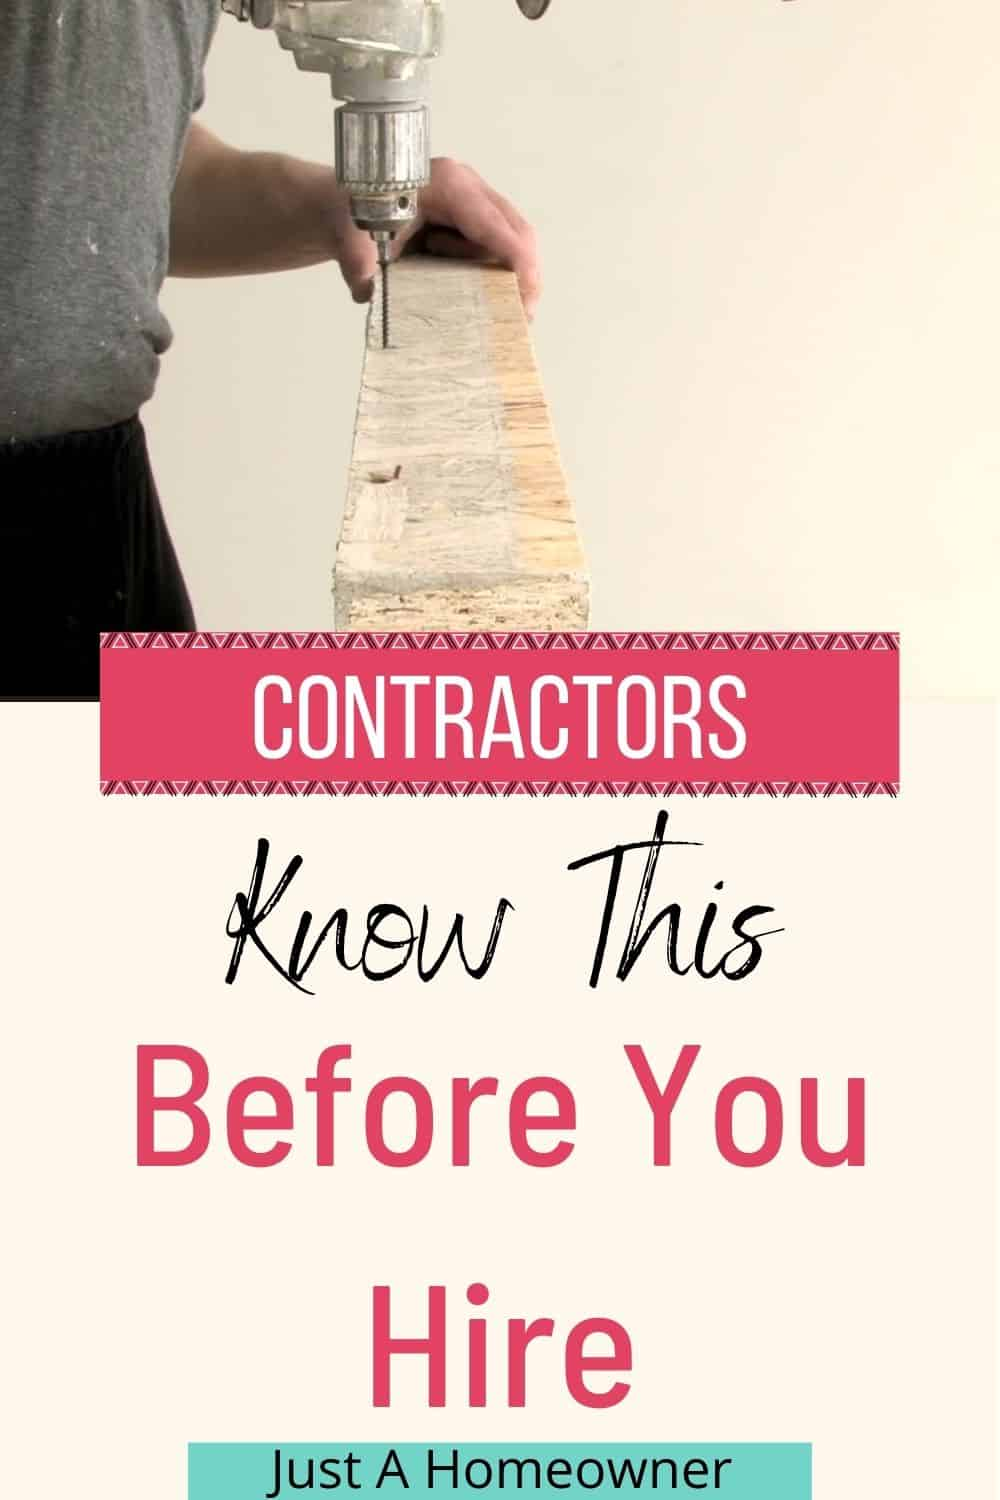 How to Choose a Contractor